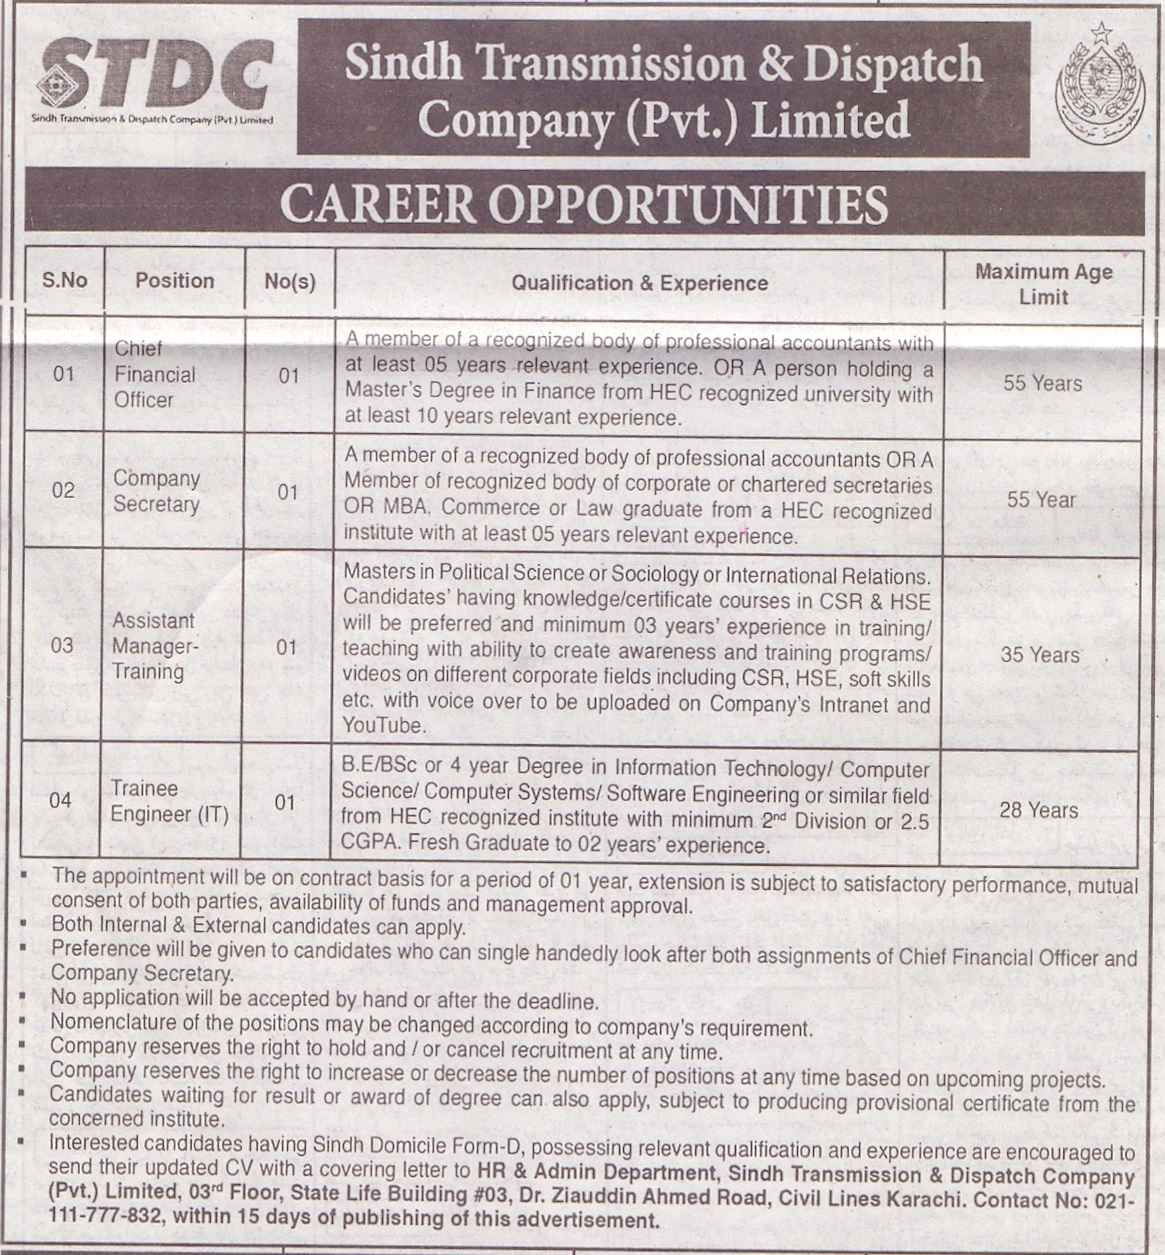 STDC Sindh Transmission & Dispatch Company (Pvt.) Limited Jobs 2020 for Trainee Engineer (IT)